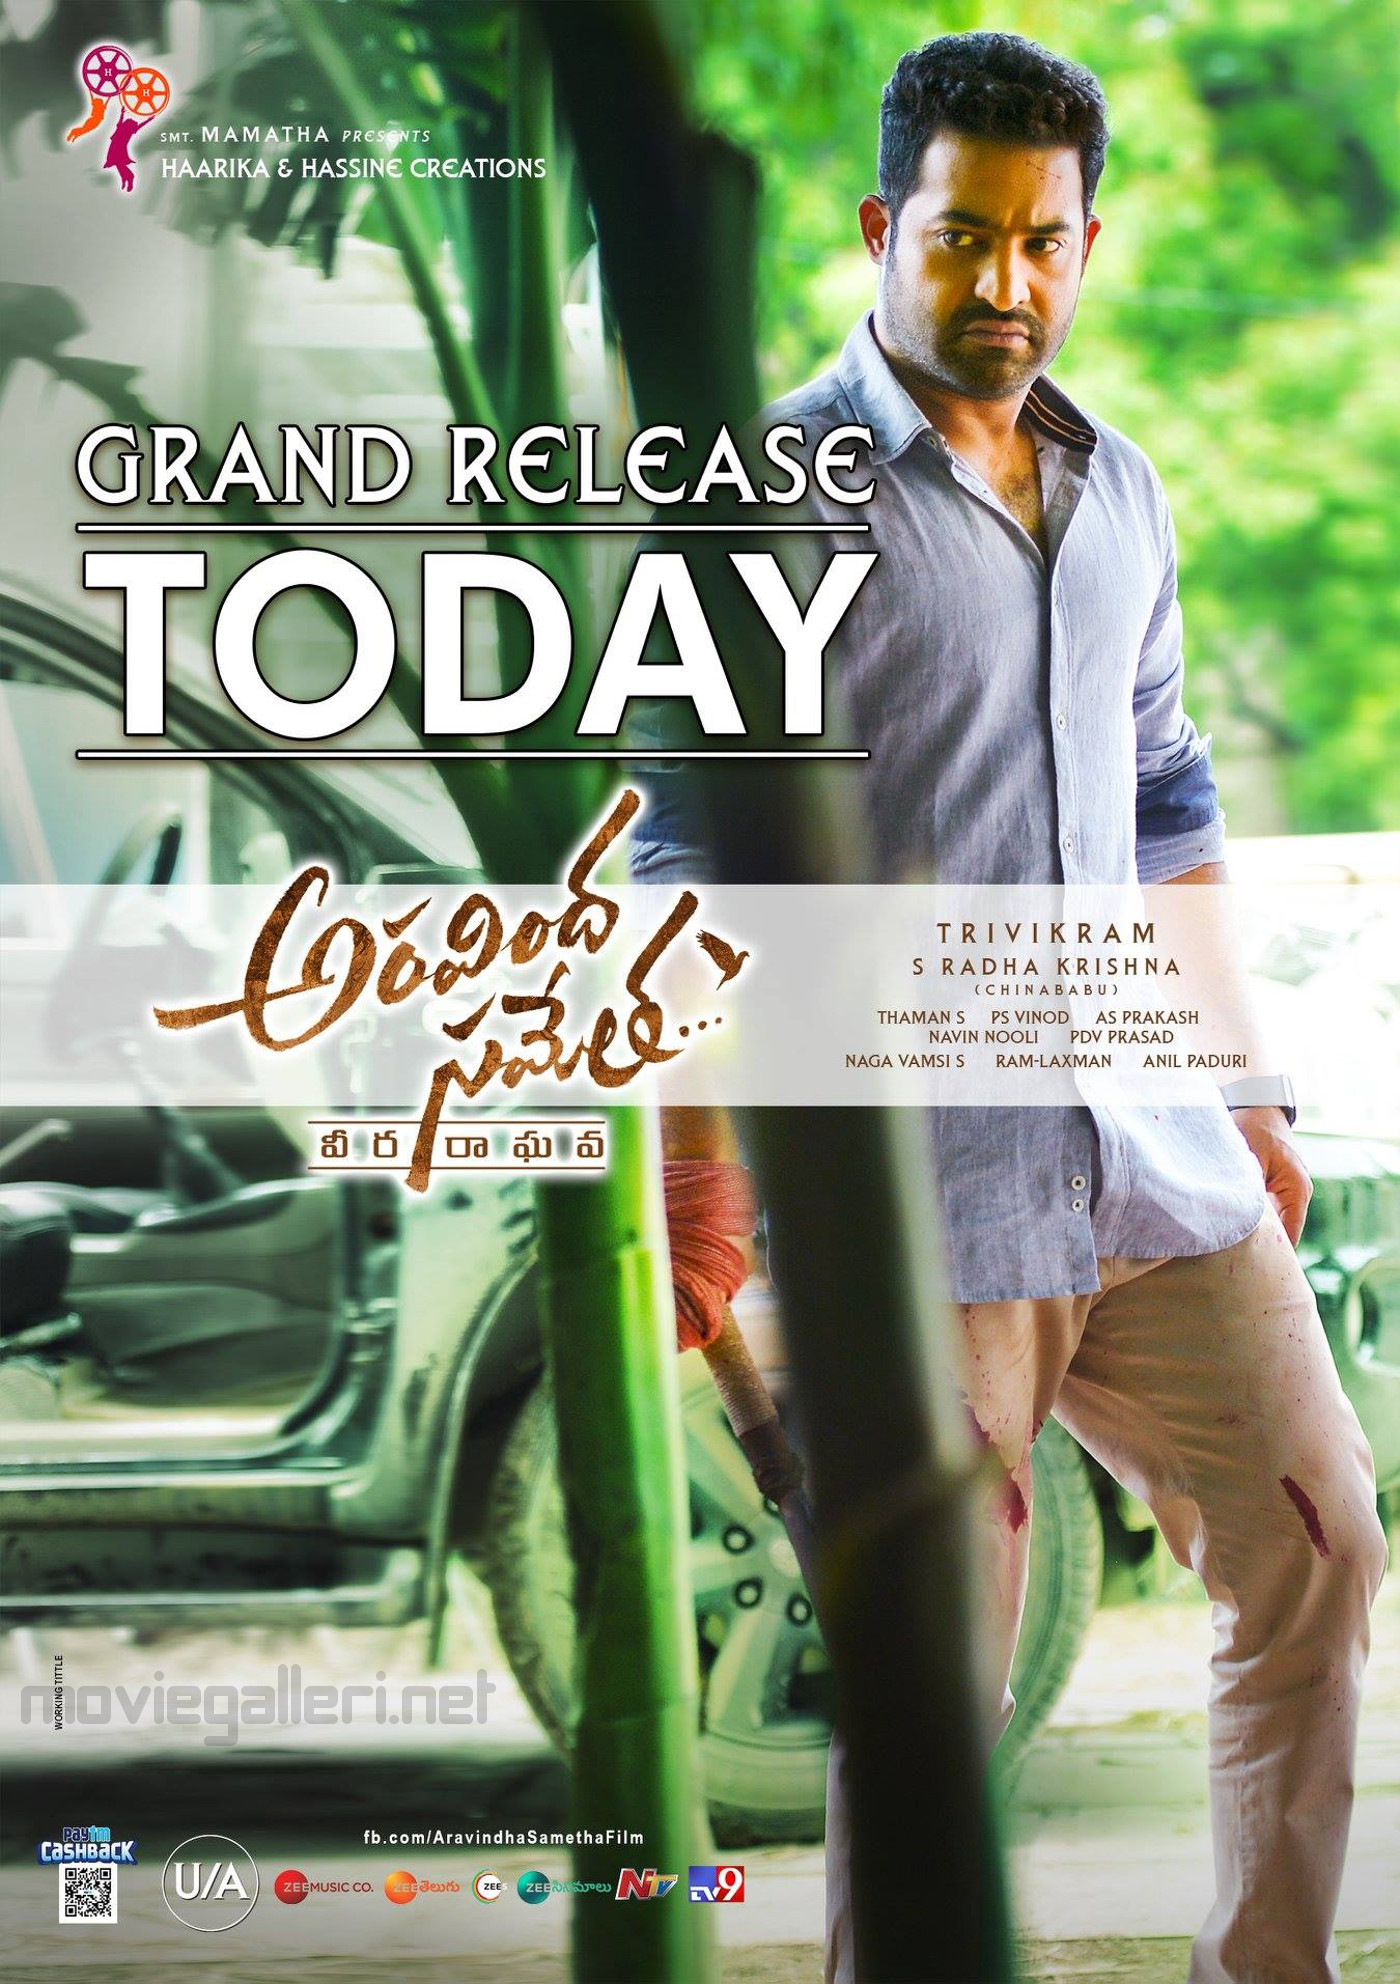 Jr NTR Aravindha Sametha Grand Release Today Posters HD